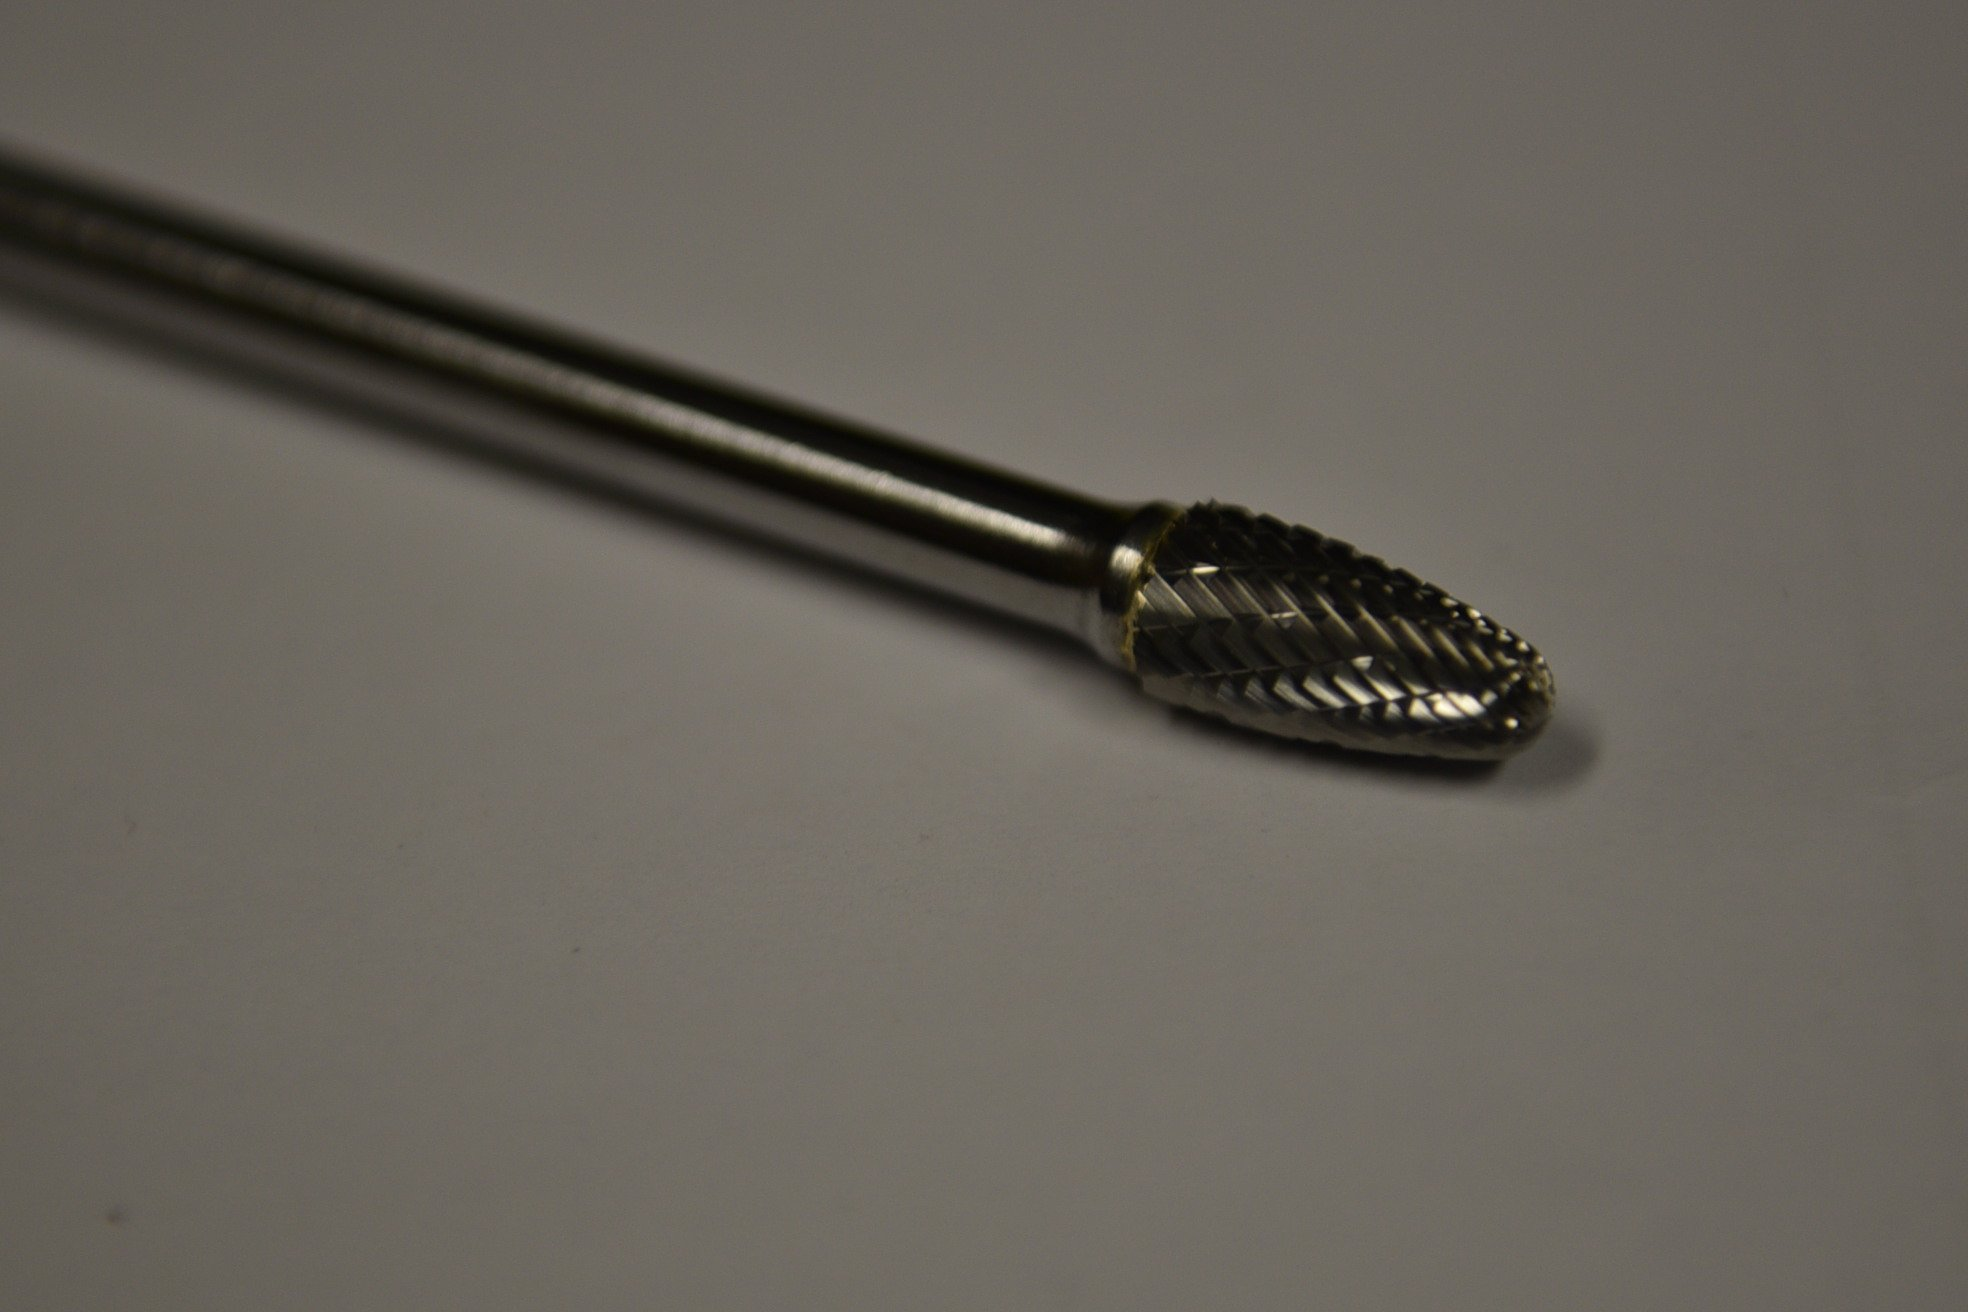 SF-3L6 Solid Carbide Burr Die Grinder Bit 3/8'' x 3/4'' on 6'' Long Steel Shank